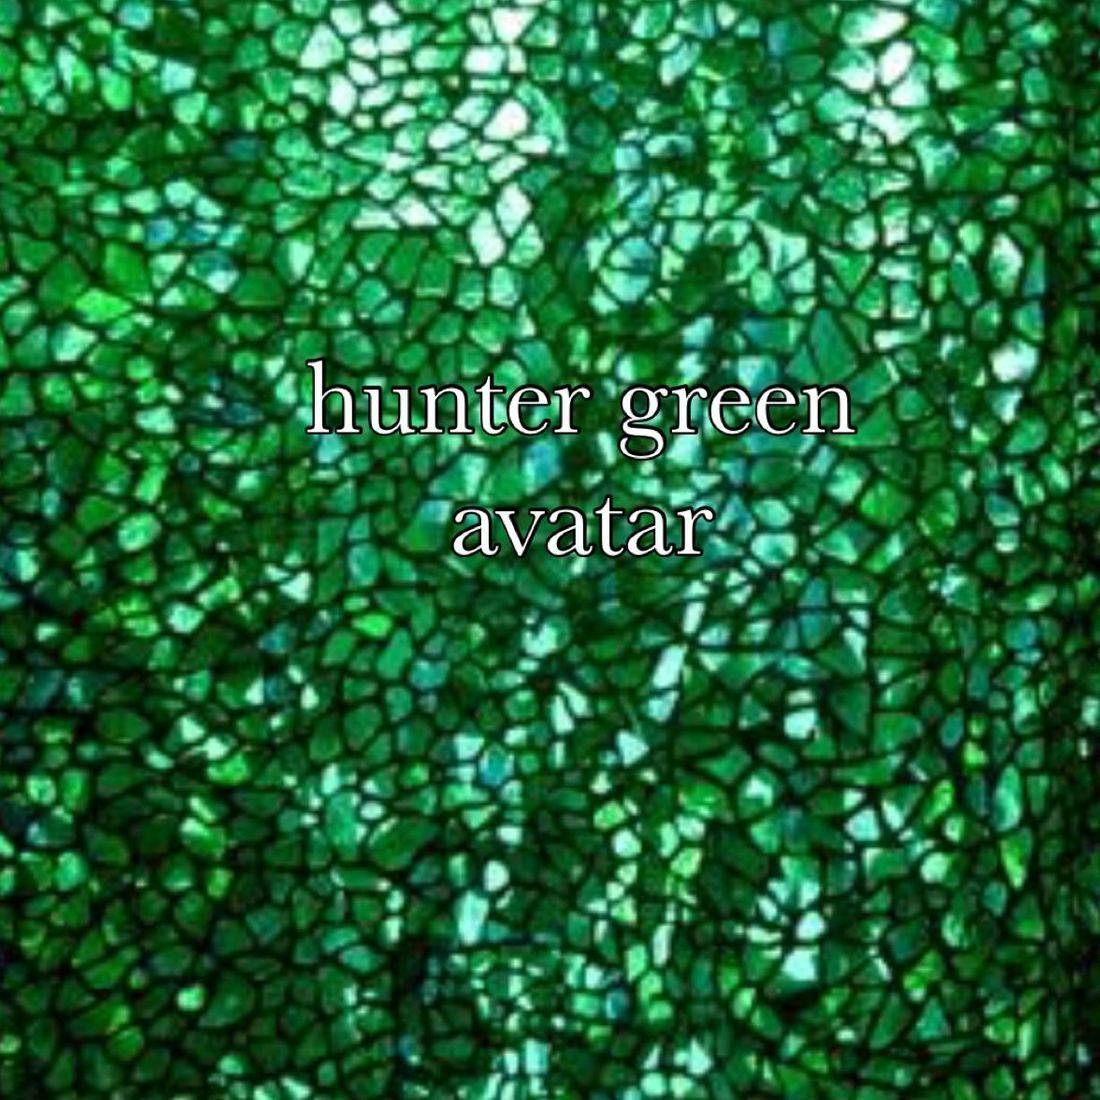 Hunter green avatar